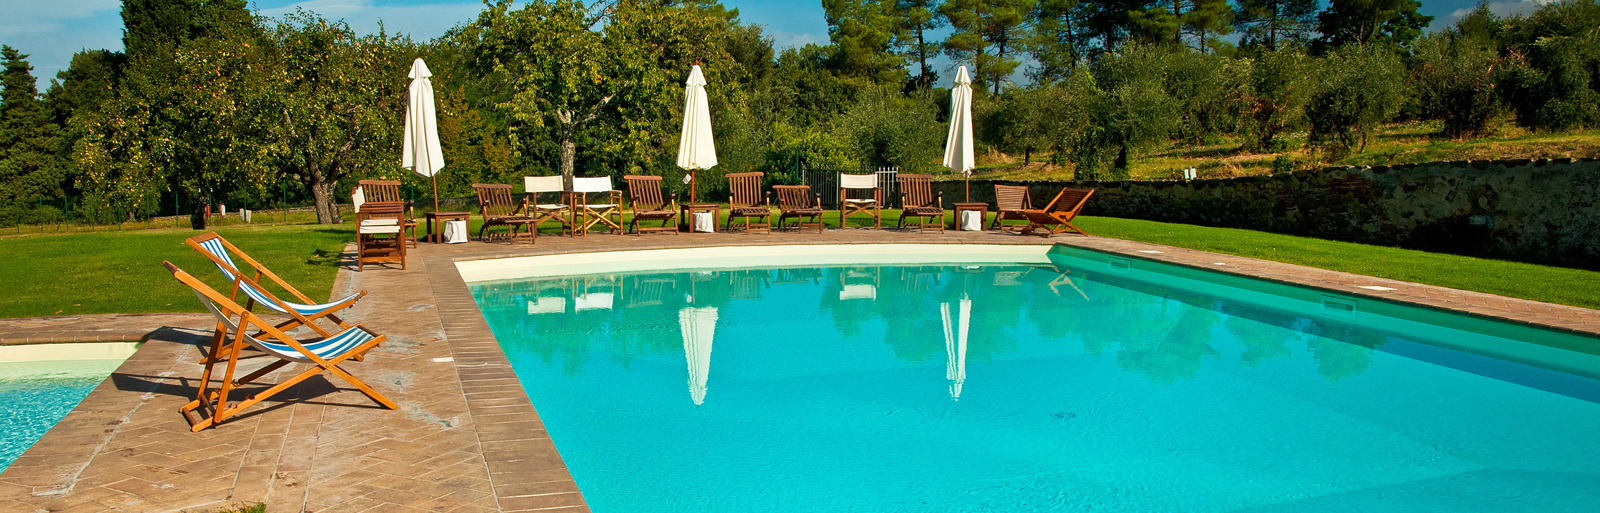 Services Particuliers - pompe piscine, relevage